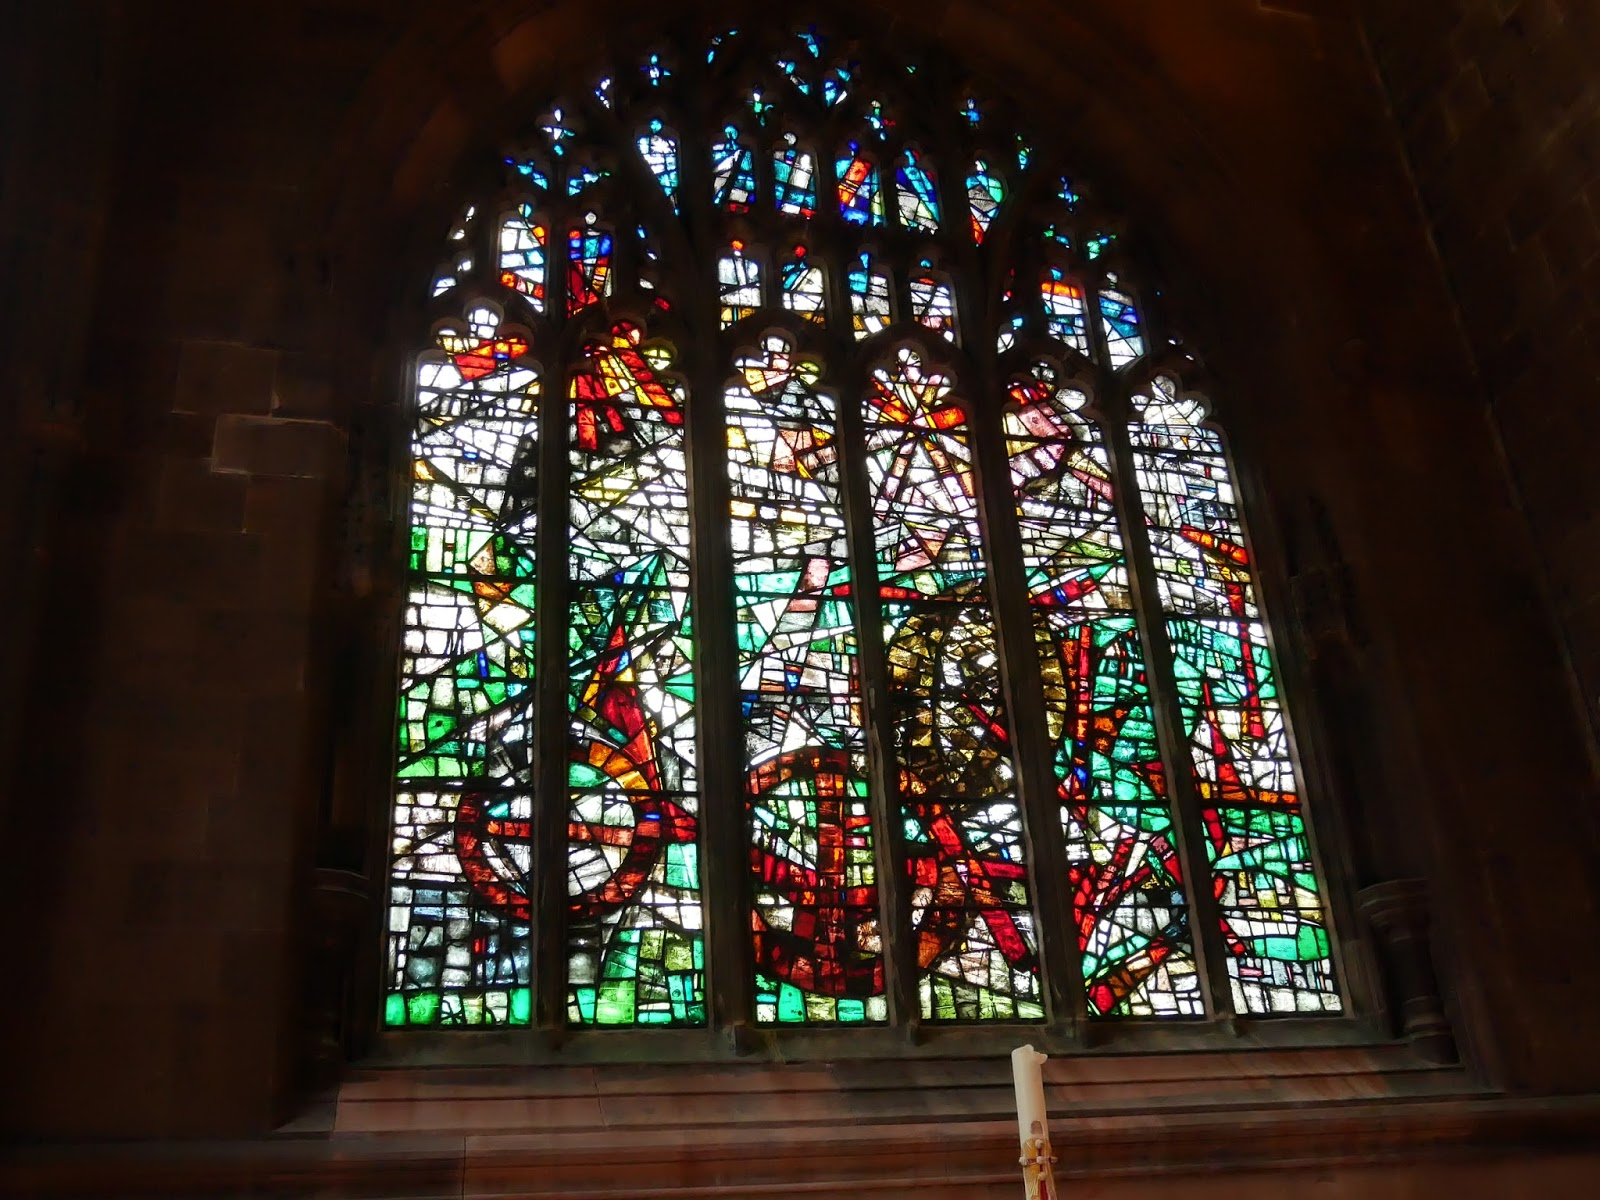 A stained glass window at Manchester Cathedral - Lumix GX80